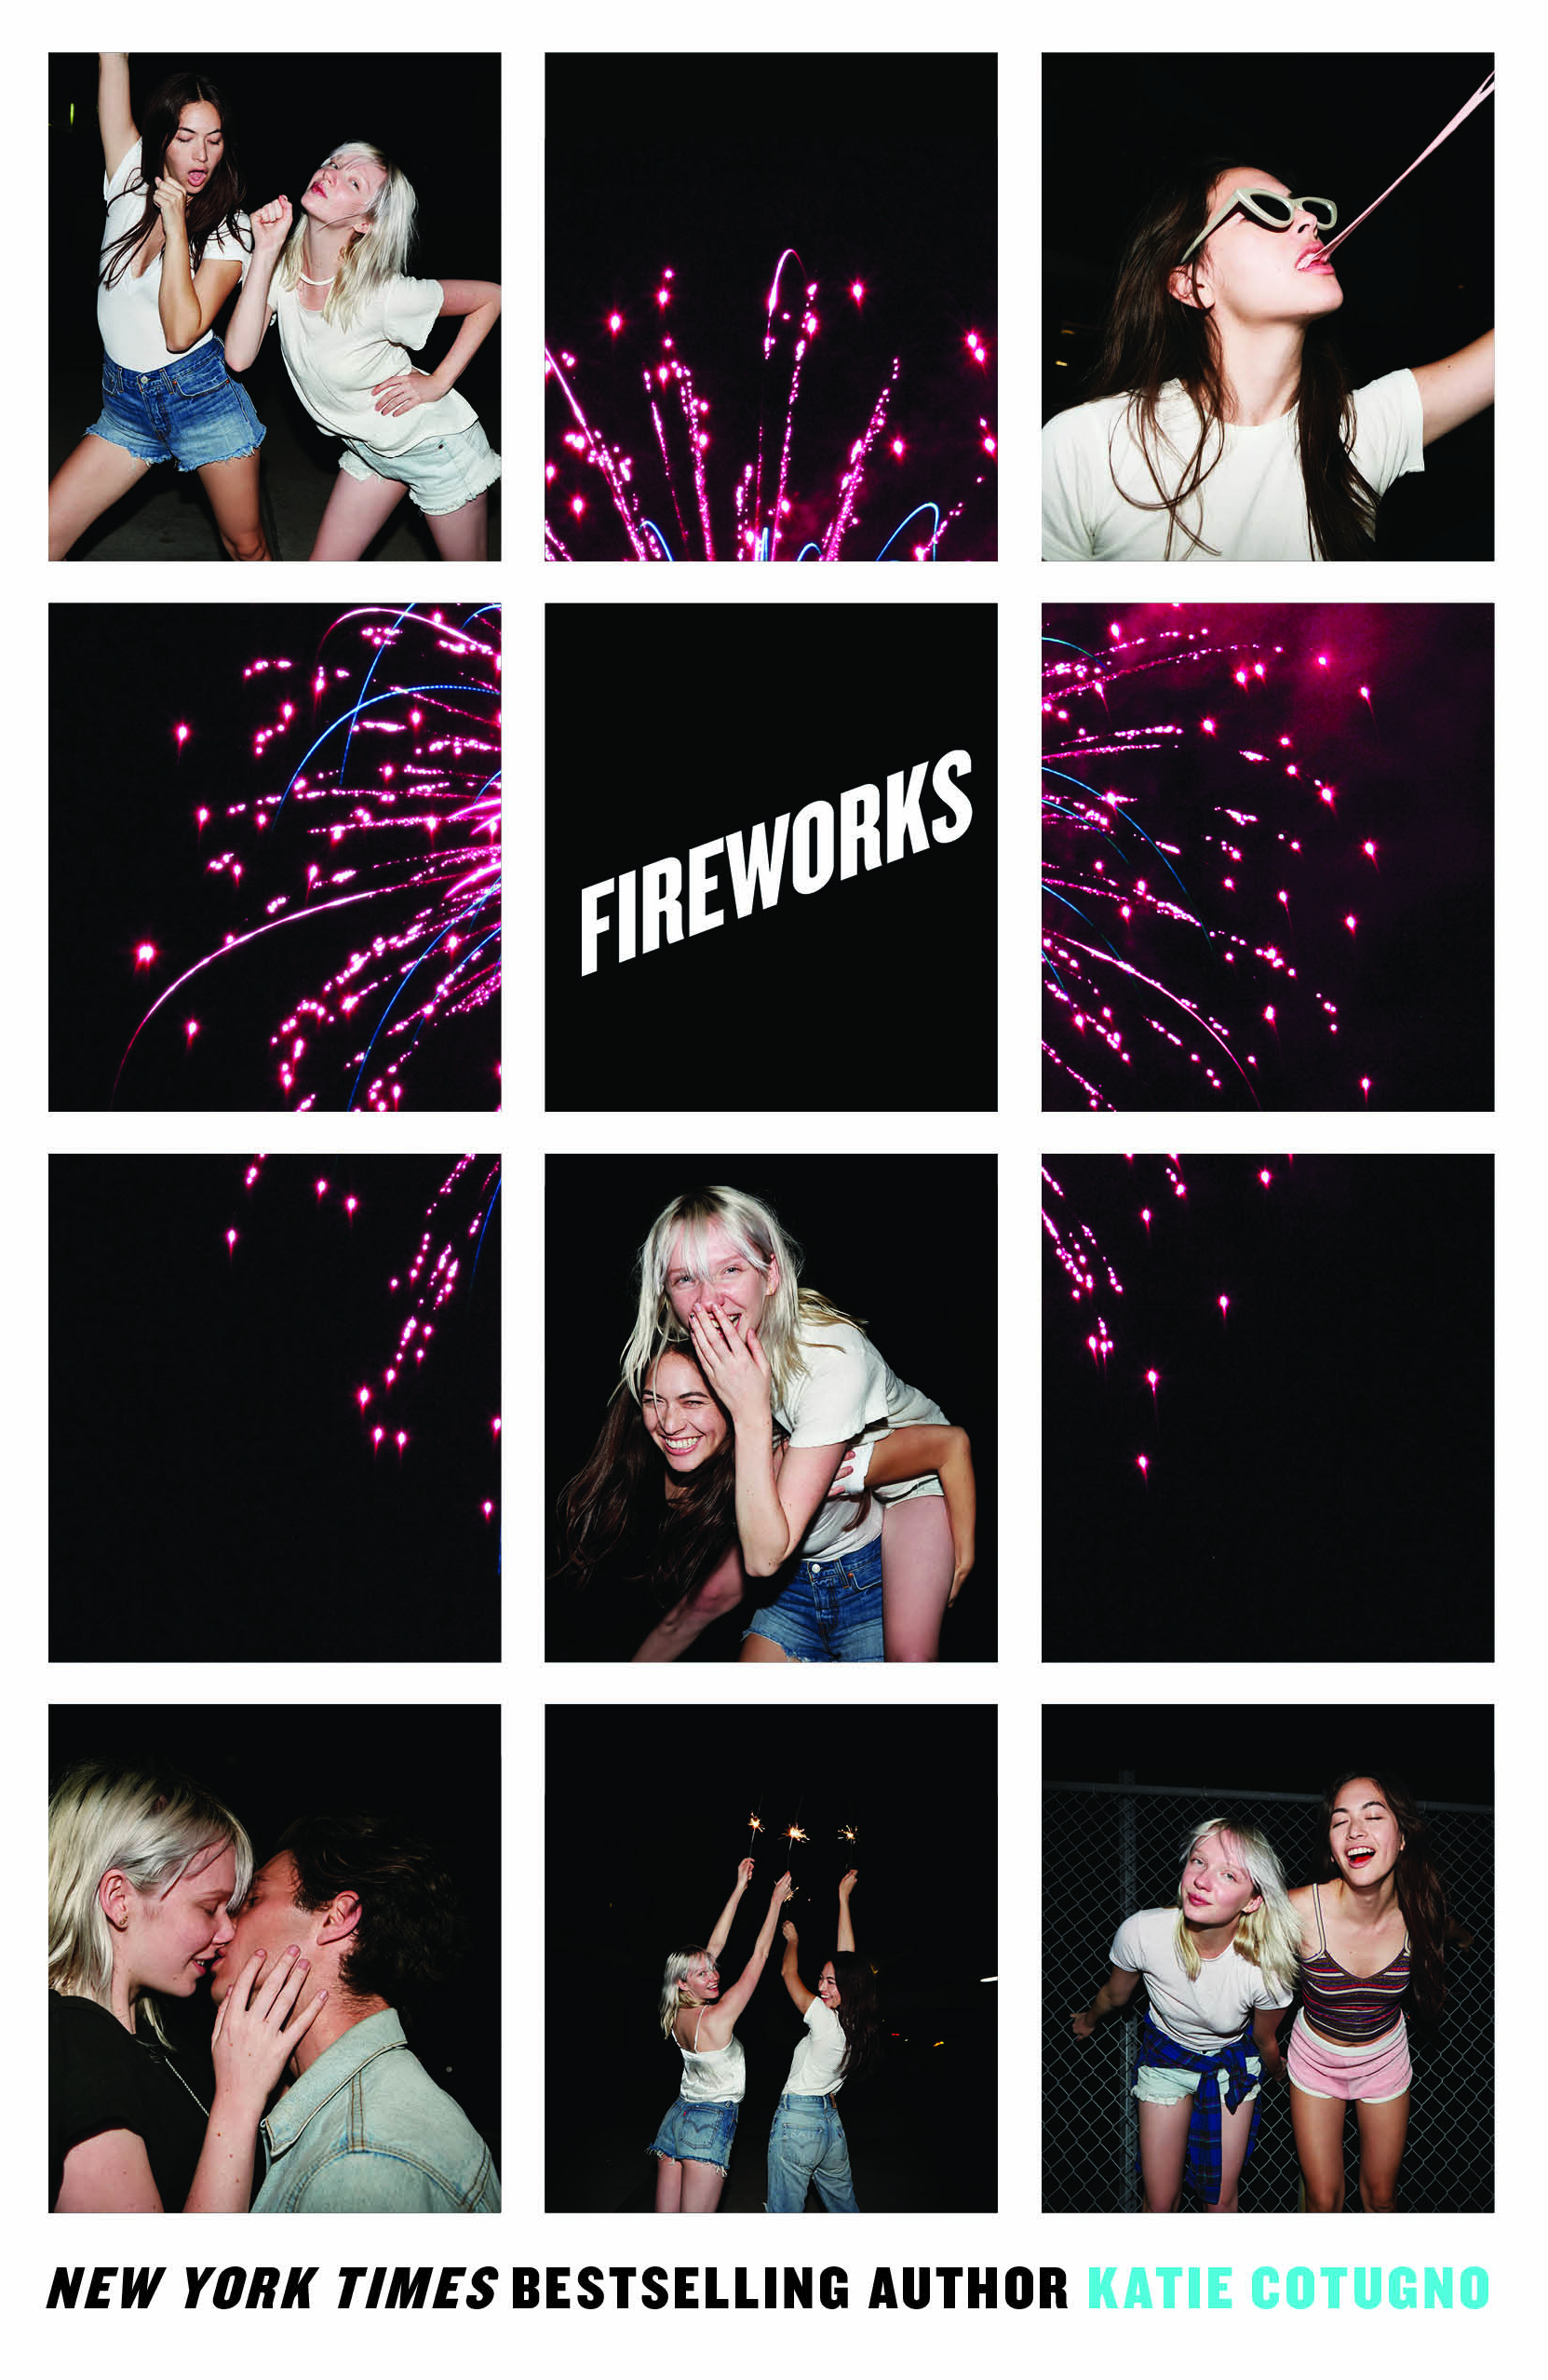 Image result for fireworks katie cotugno book cover hd